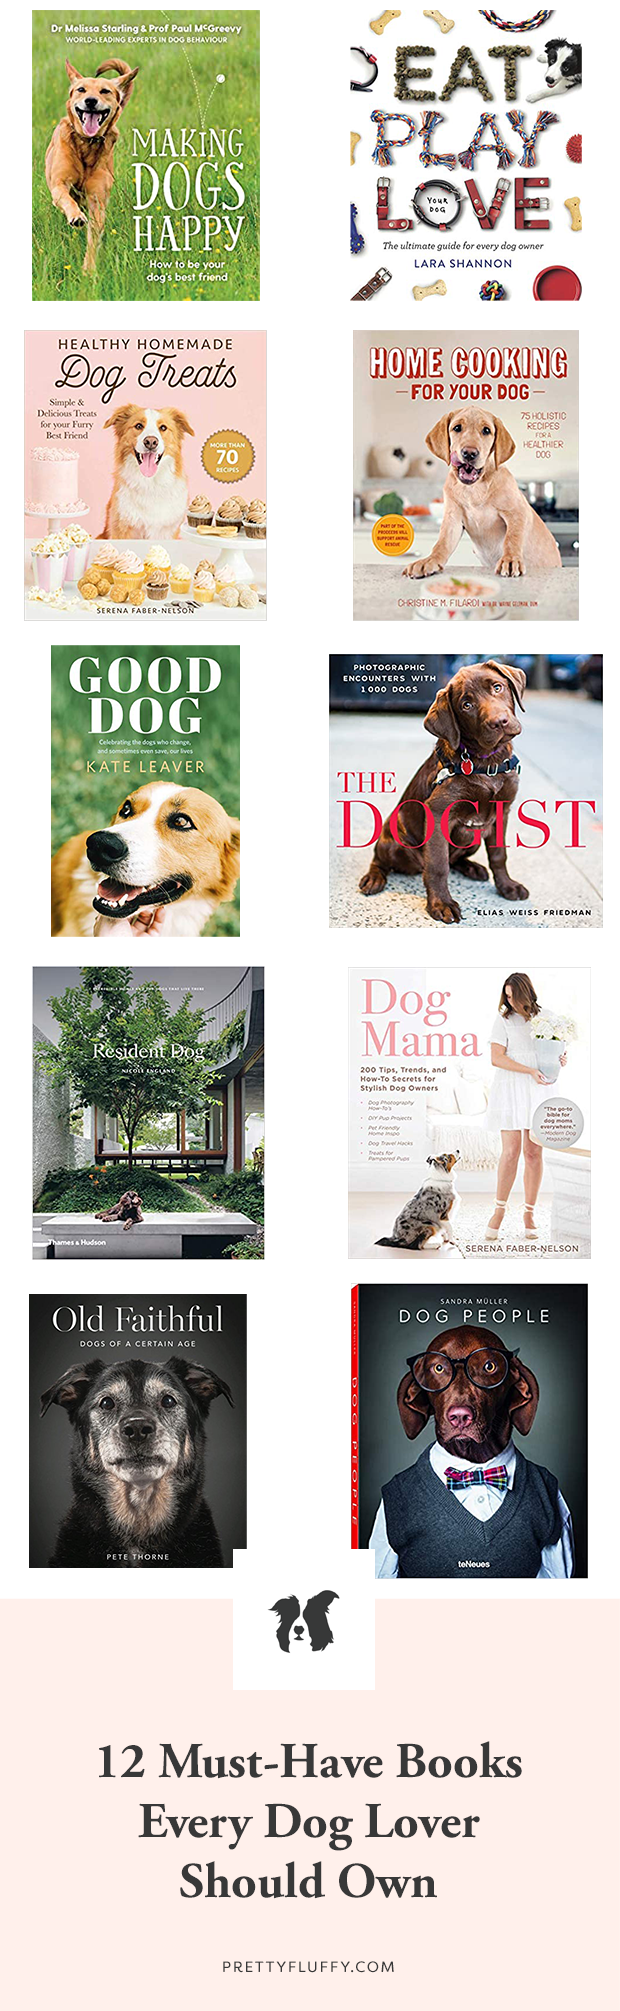 The ultimate dog lover book list - including the best training, recipe, and lifestyle titles that have everything you need to know about raising dogs.